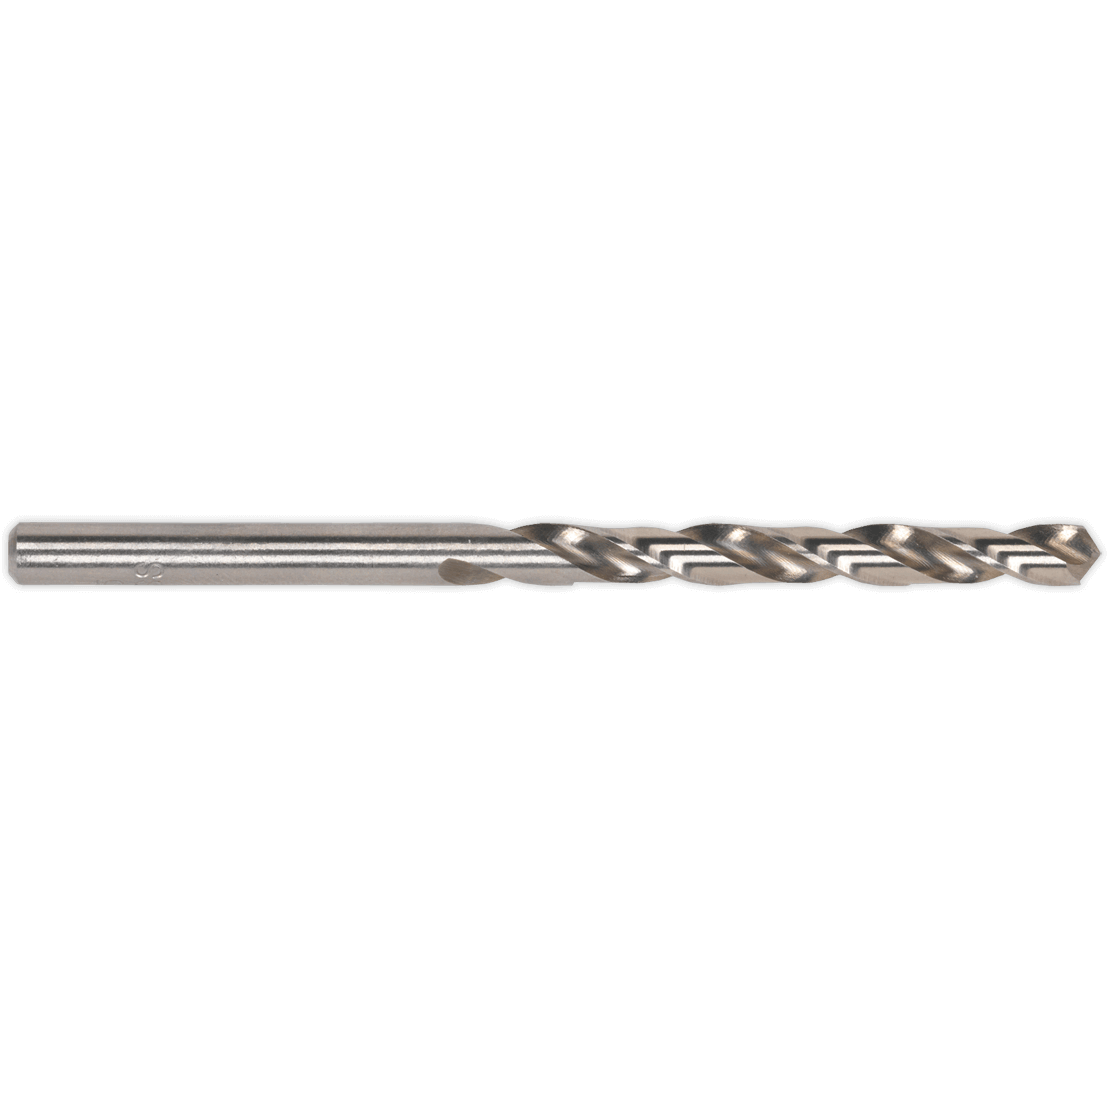 Sealey HSS Jobber Drill Bit 5mm Pack of 10